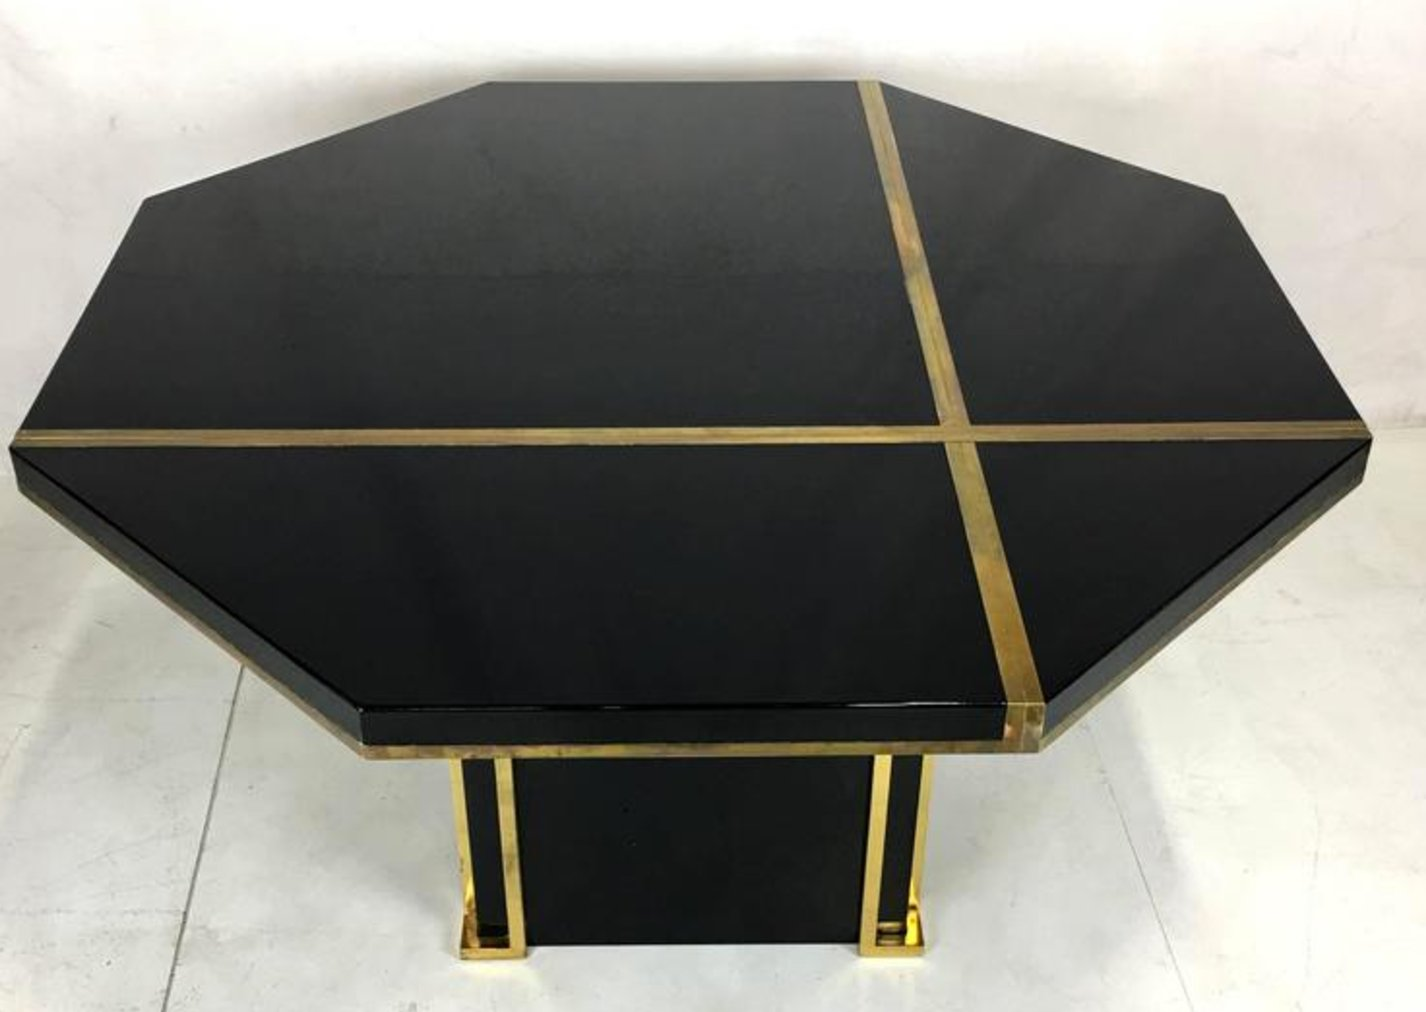 Lacquered Brass Dining Table By JC Mahey For Roche Bobois